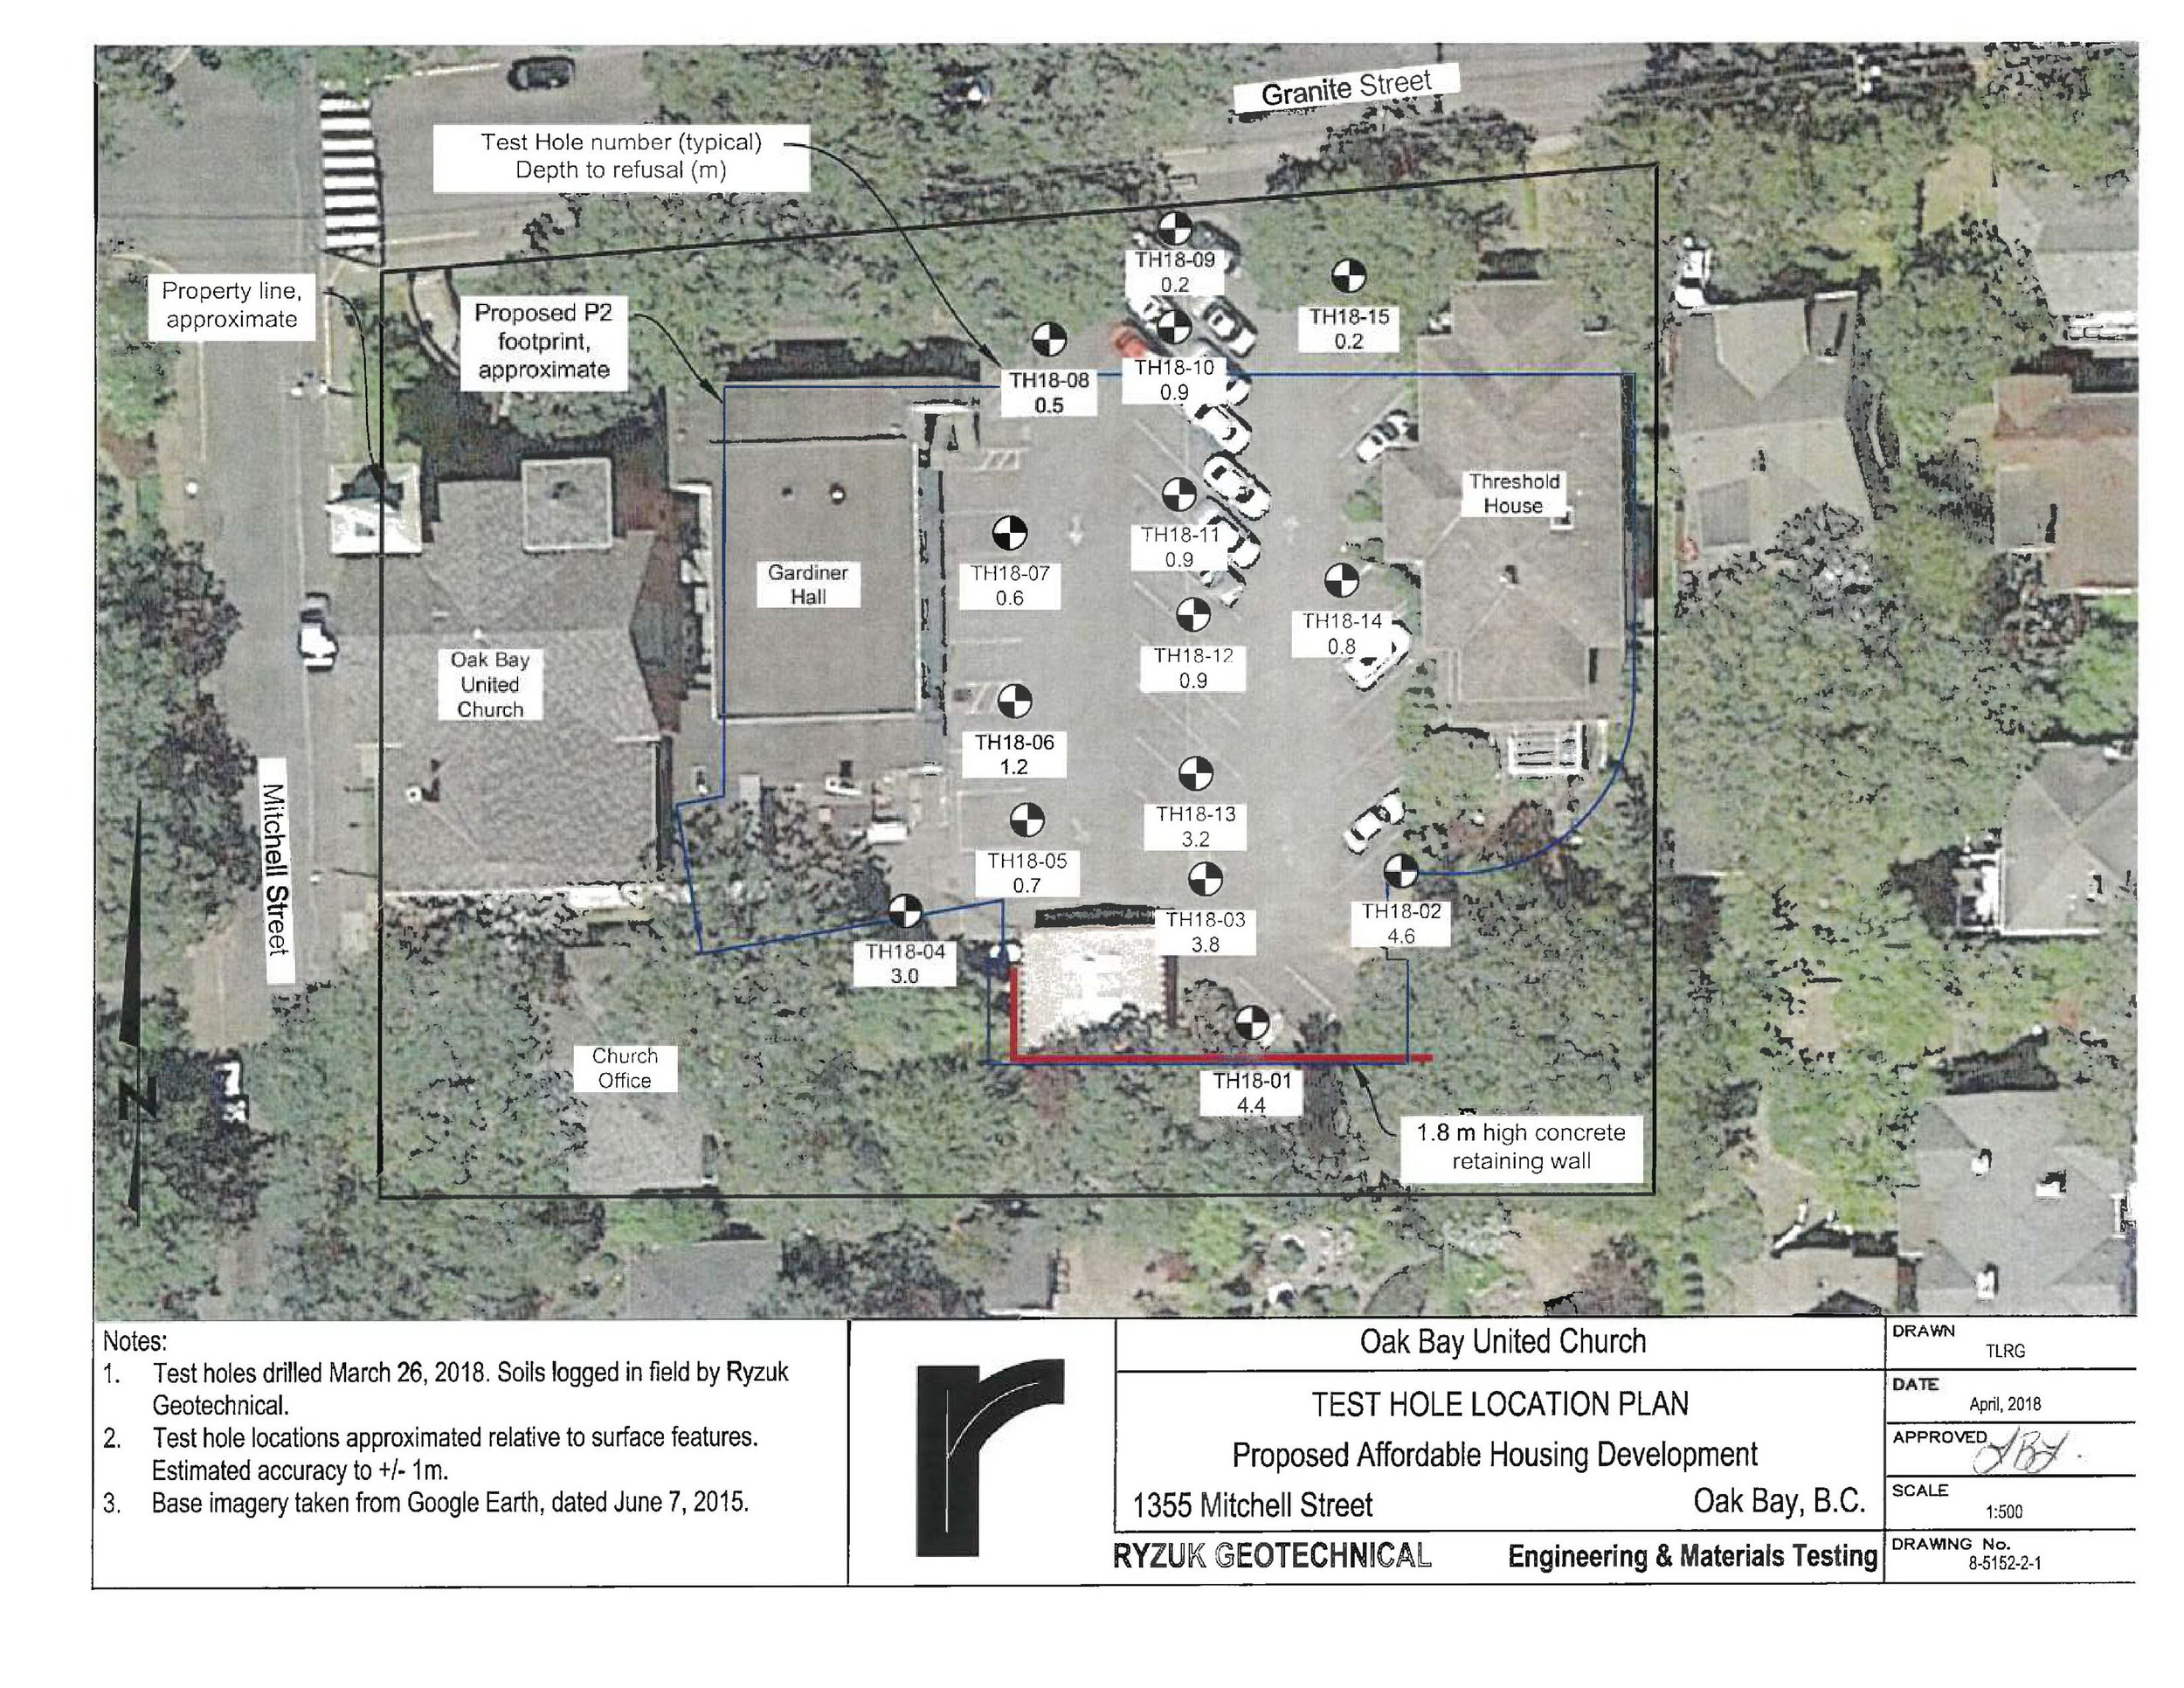 Geotechnical Report Image.jpg